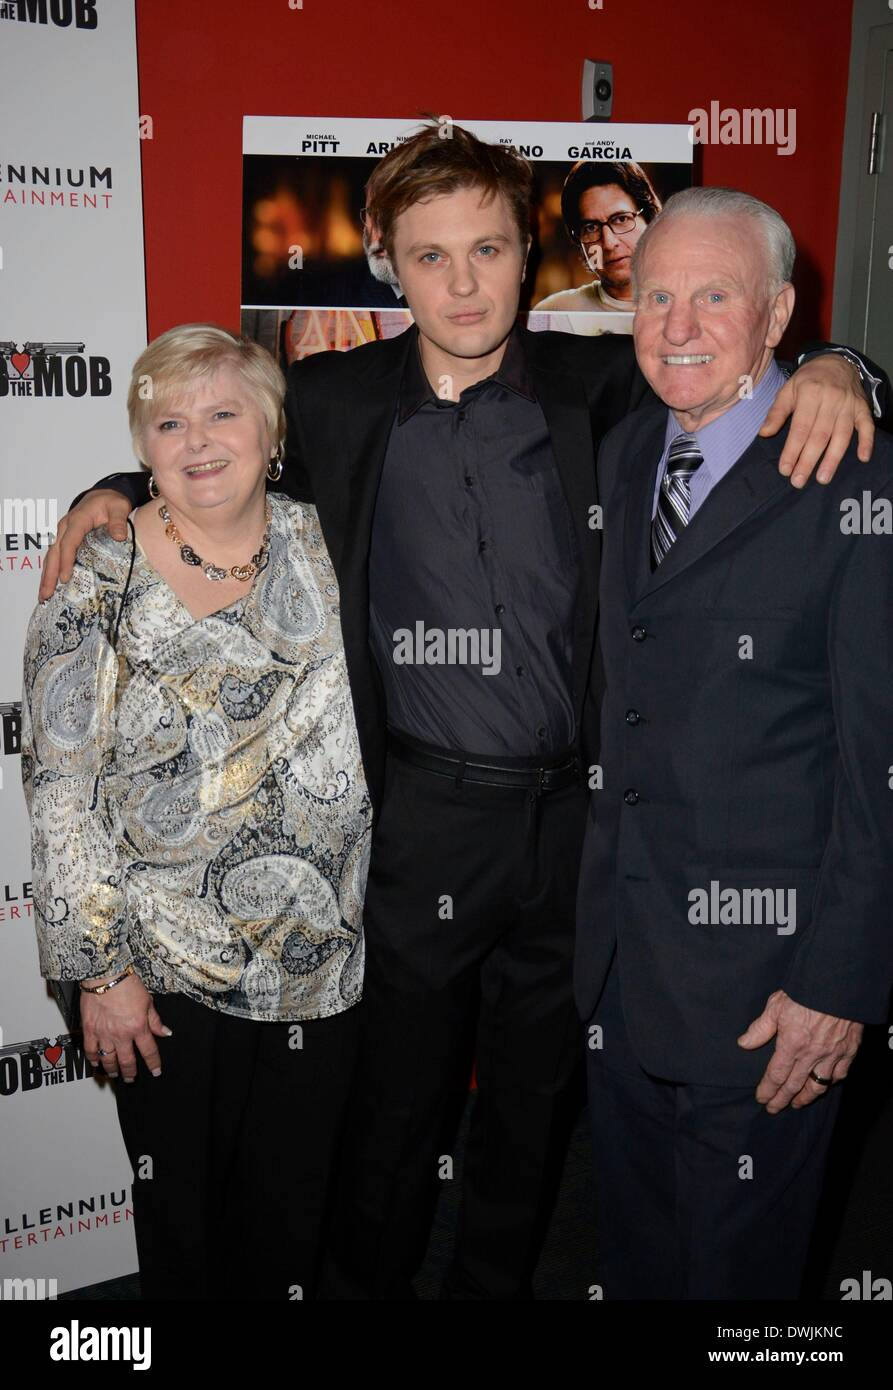 New York, NY, USA. 9th Mar, 2014. Michael Pitt with parents Jane Pitt and William Pitt at arrivals for ROB THE MOB Stock Photo